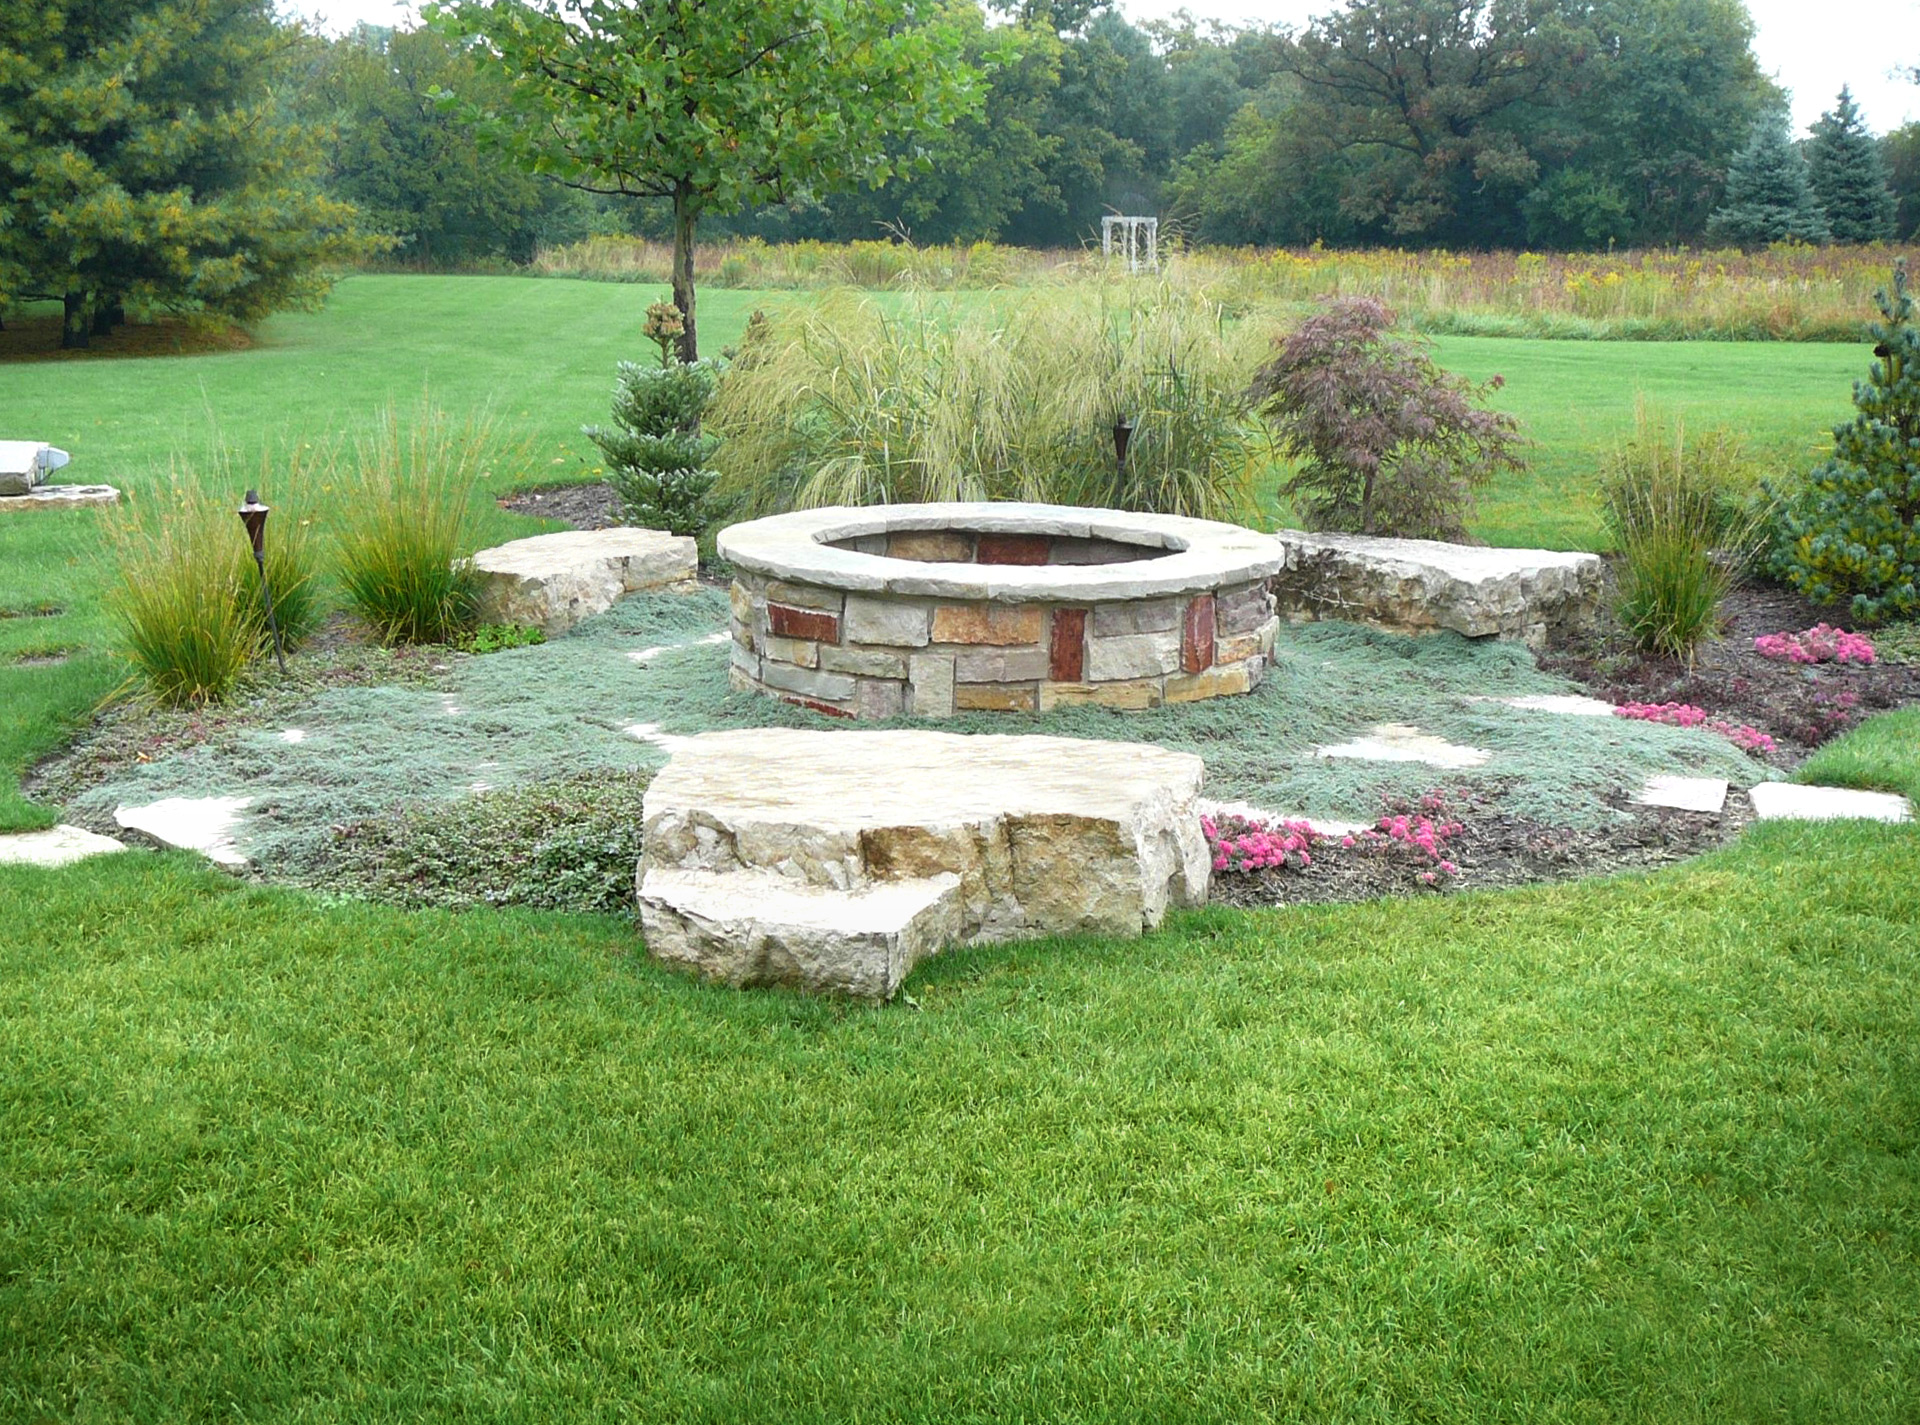 This chilton stone firepit will be enjoyed well into the autumn months.